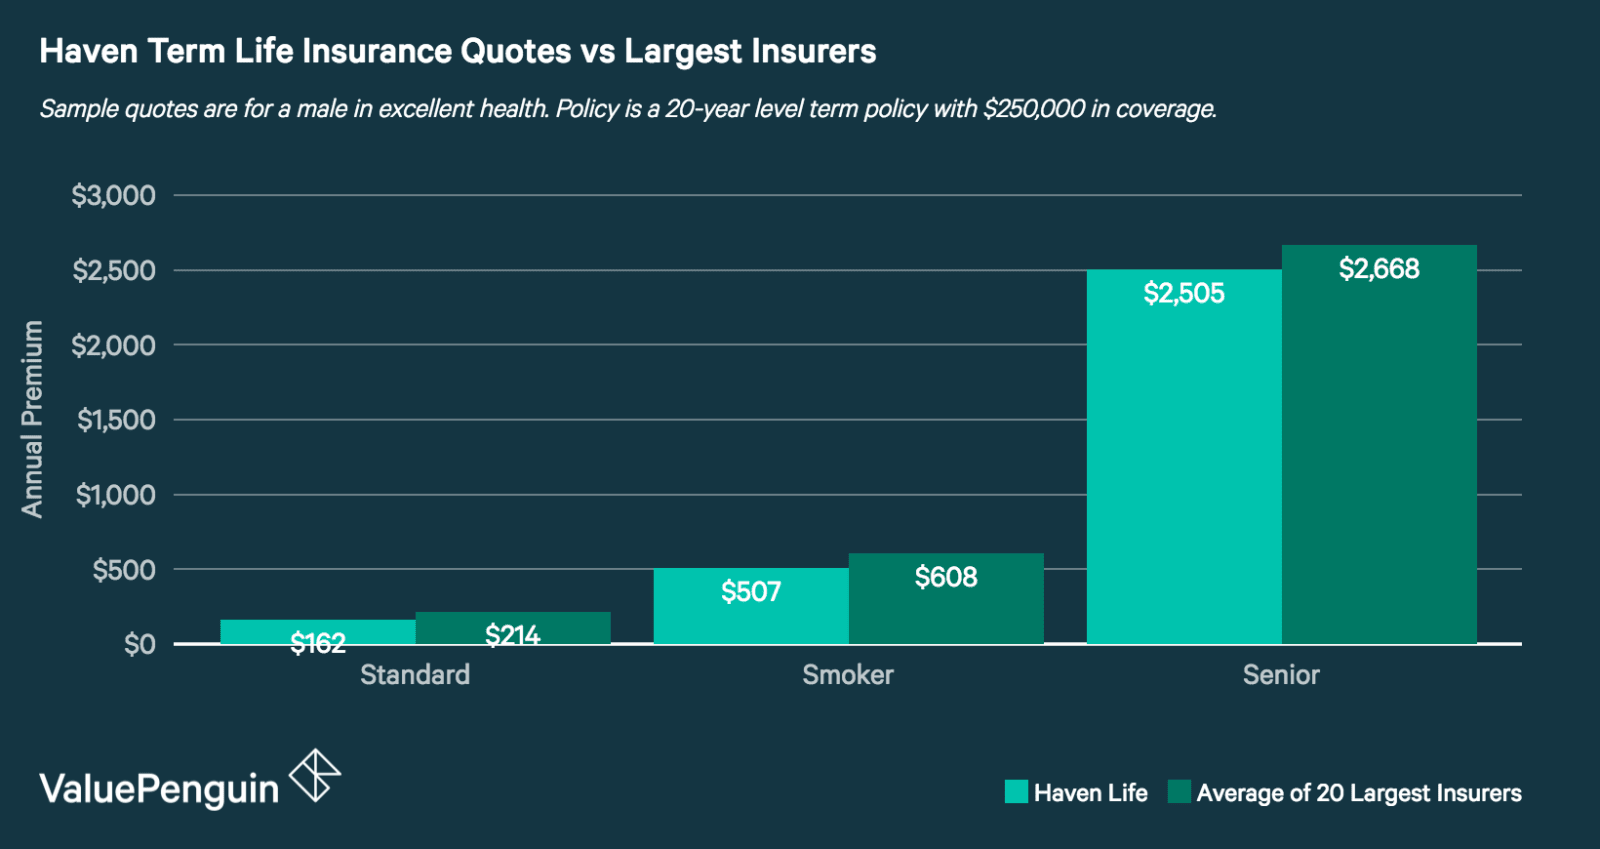 Haven term life insurance quotes compared to those from the 20 largest insurance companies